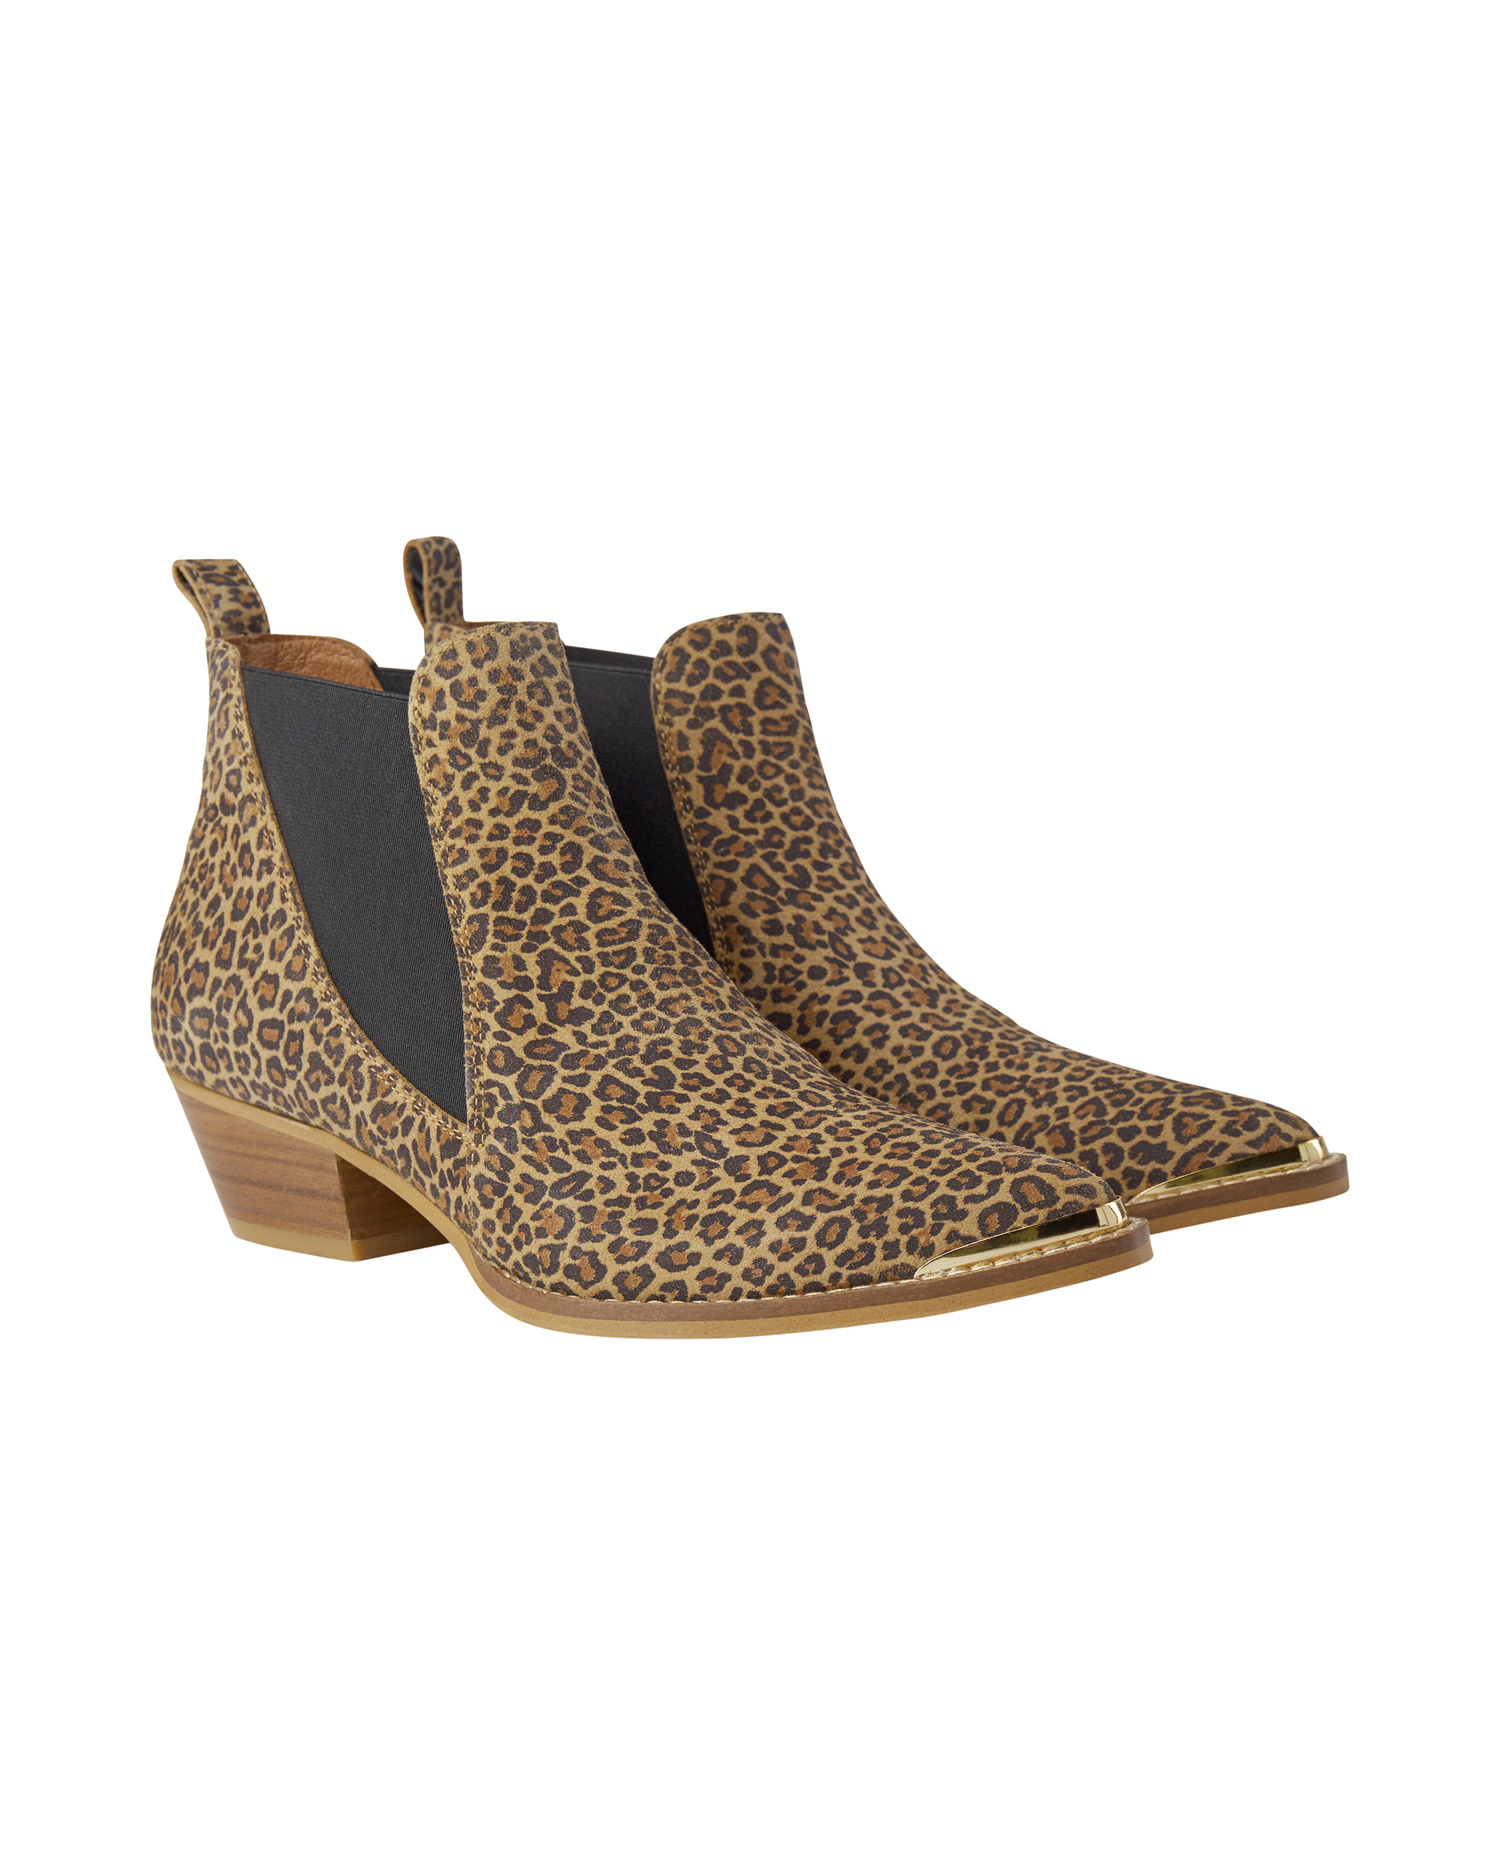 MOS MOSH DALLAS LEO BOOT